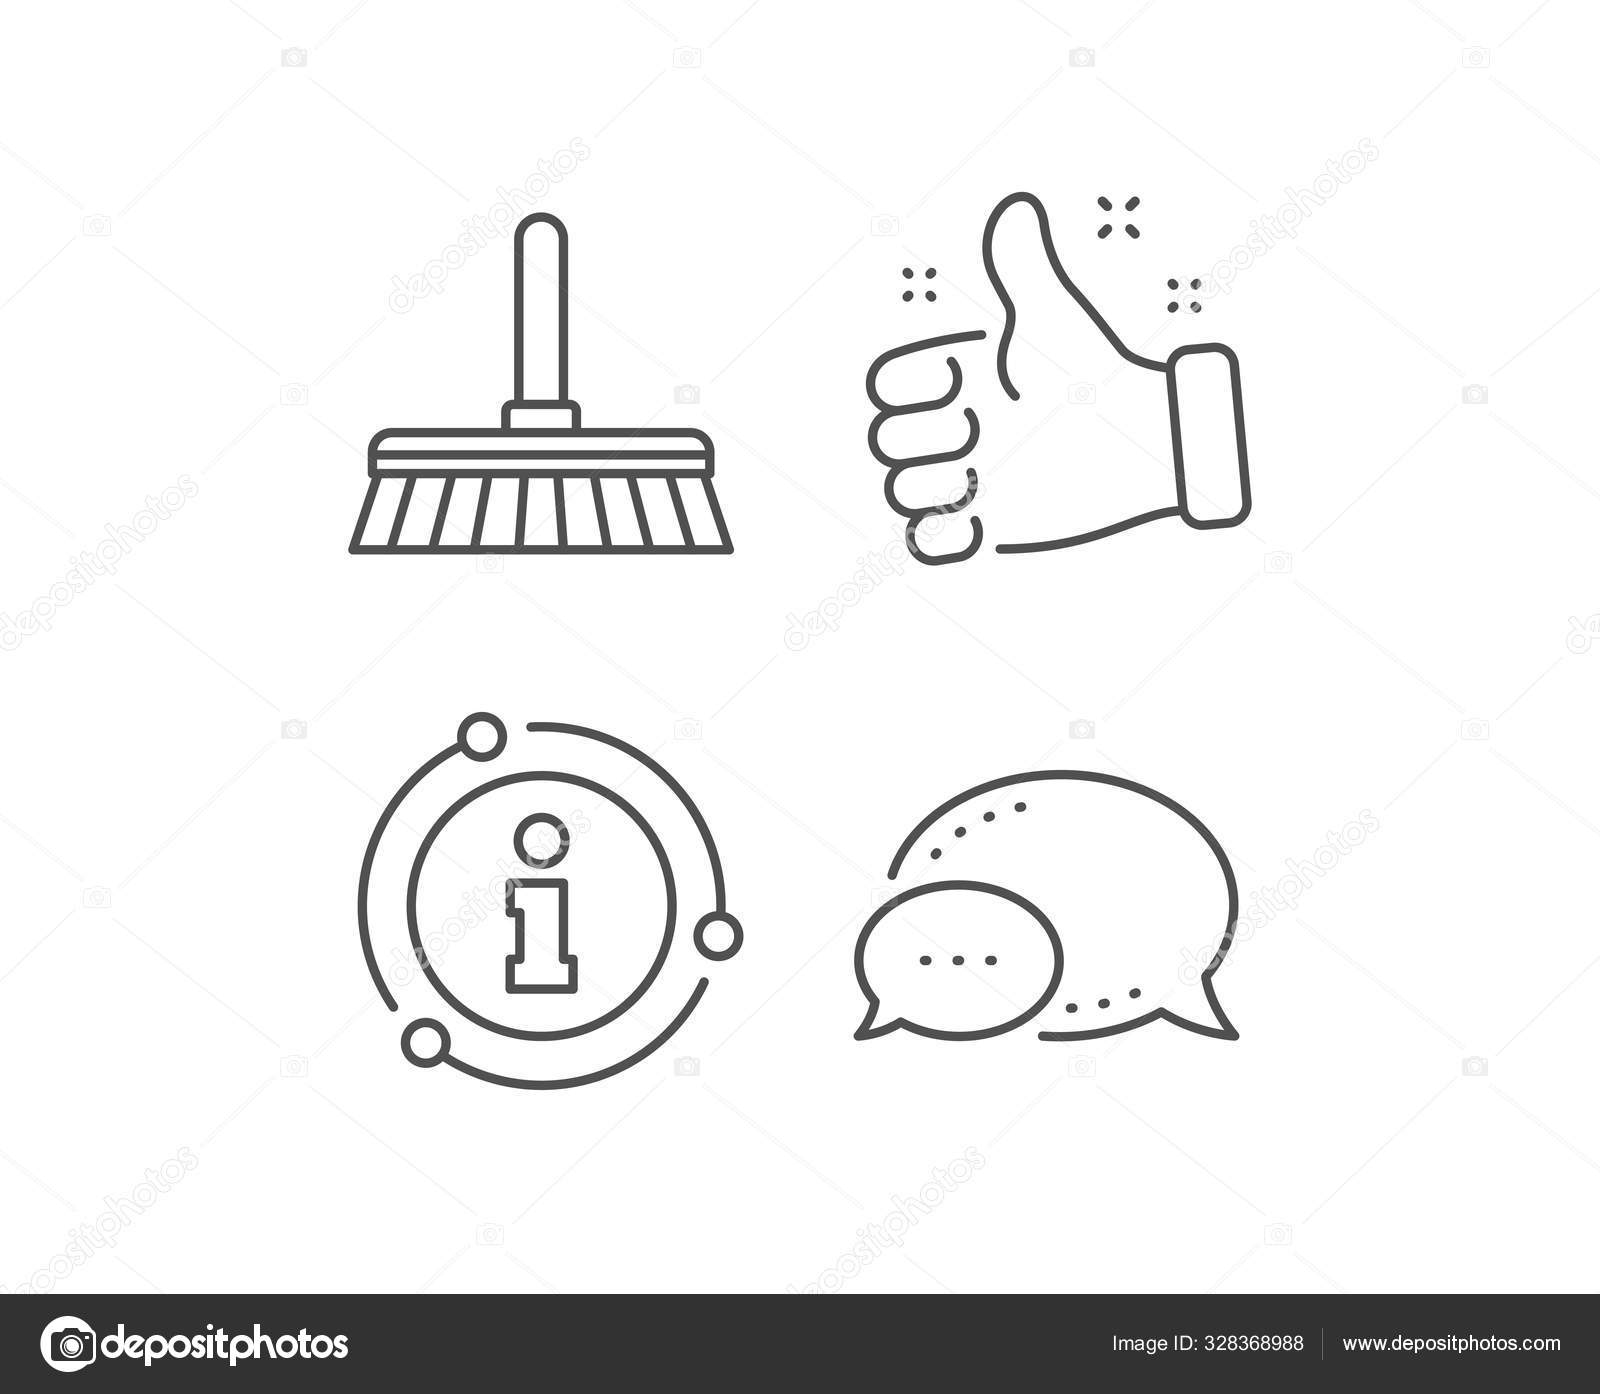 cleaning mop line icon sweep a floor vector stock vector c blankstock 328368988 depositphotos